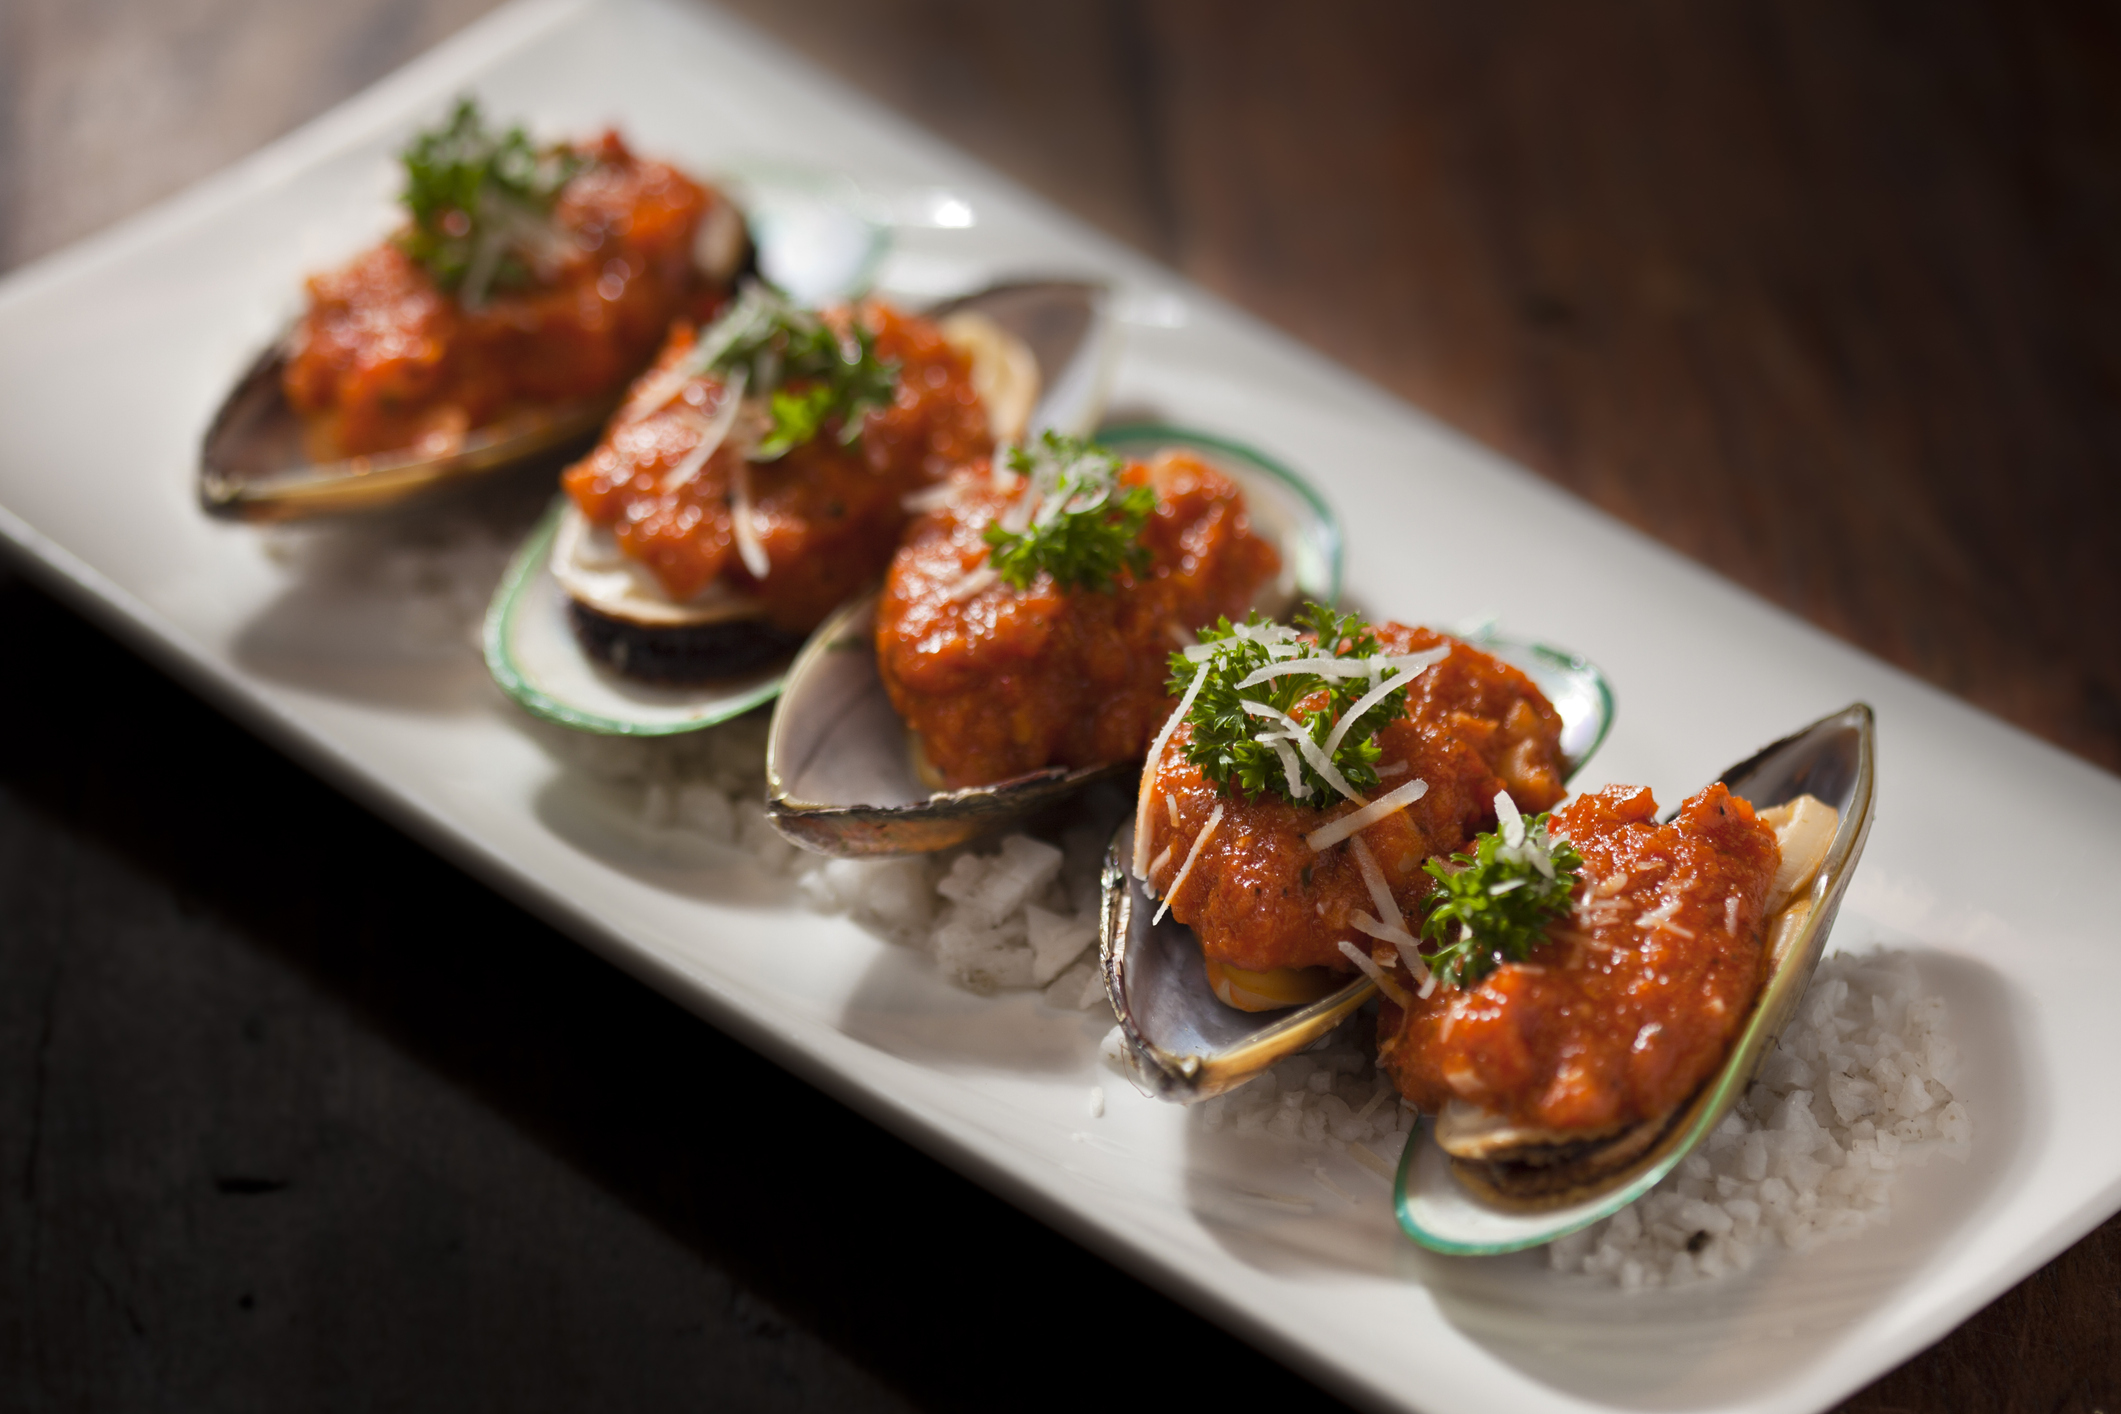 New zealand mussels with tomato sauce